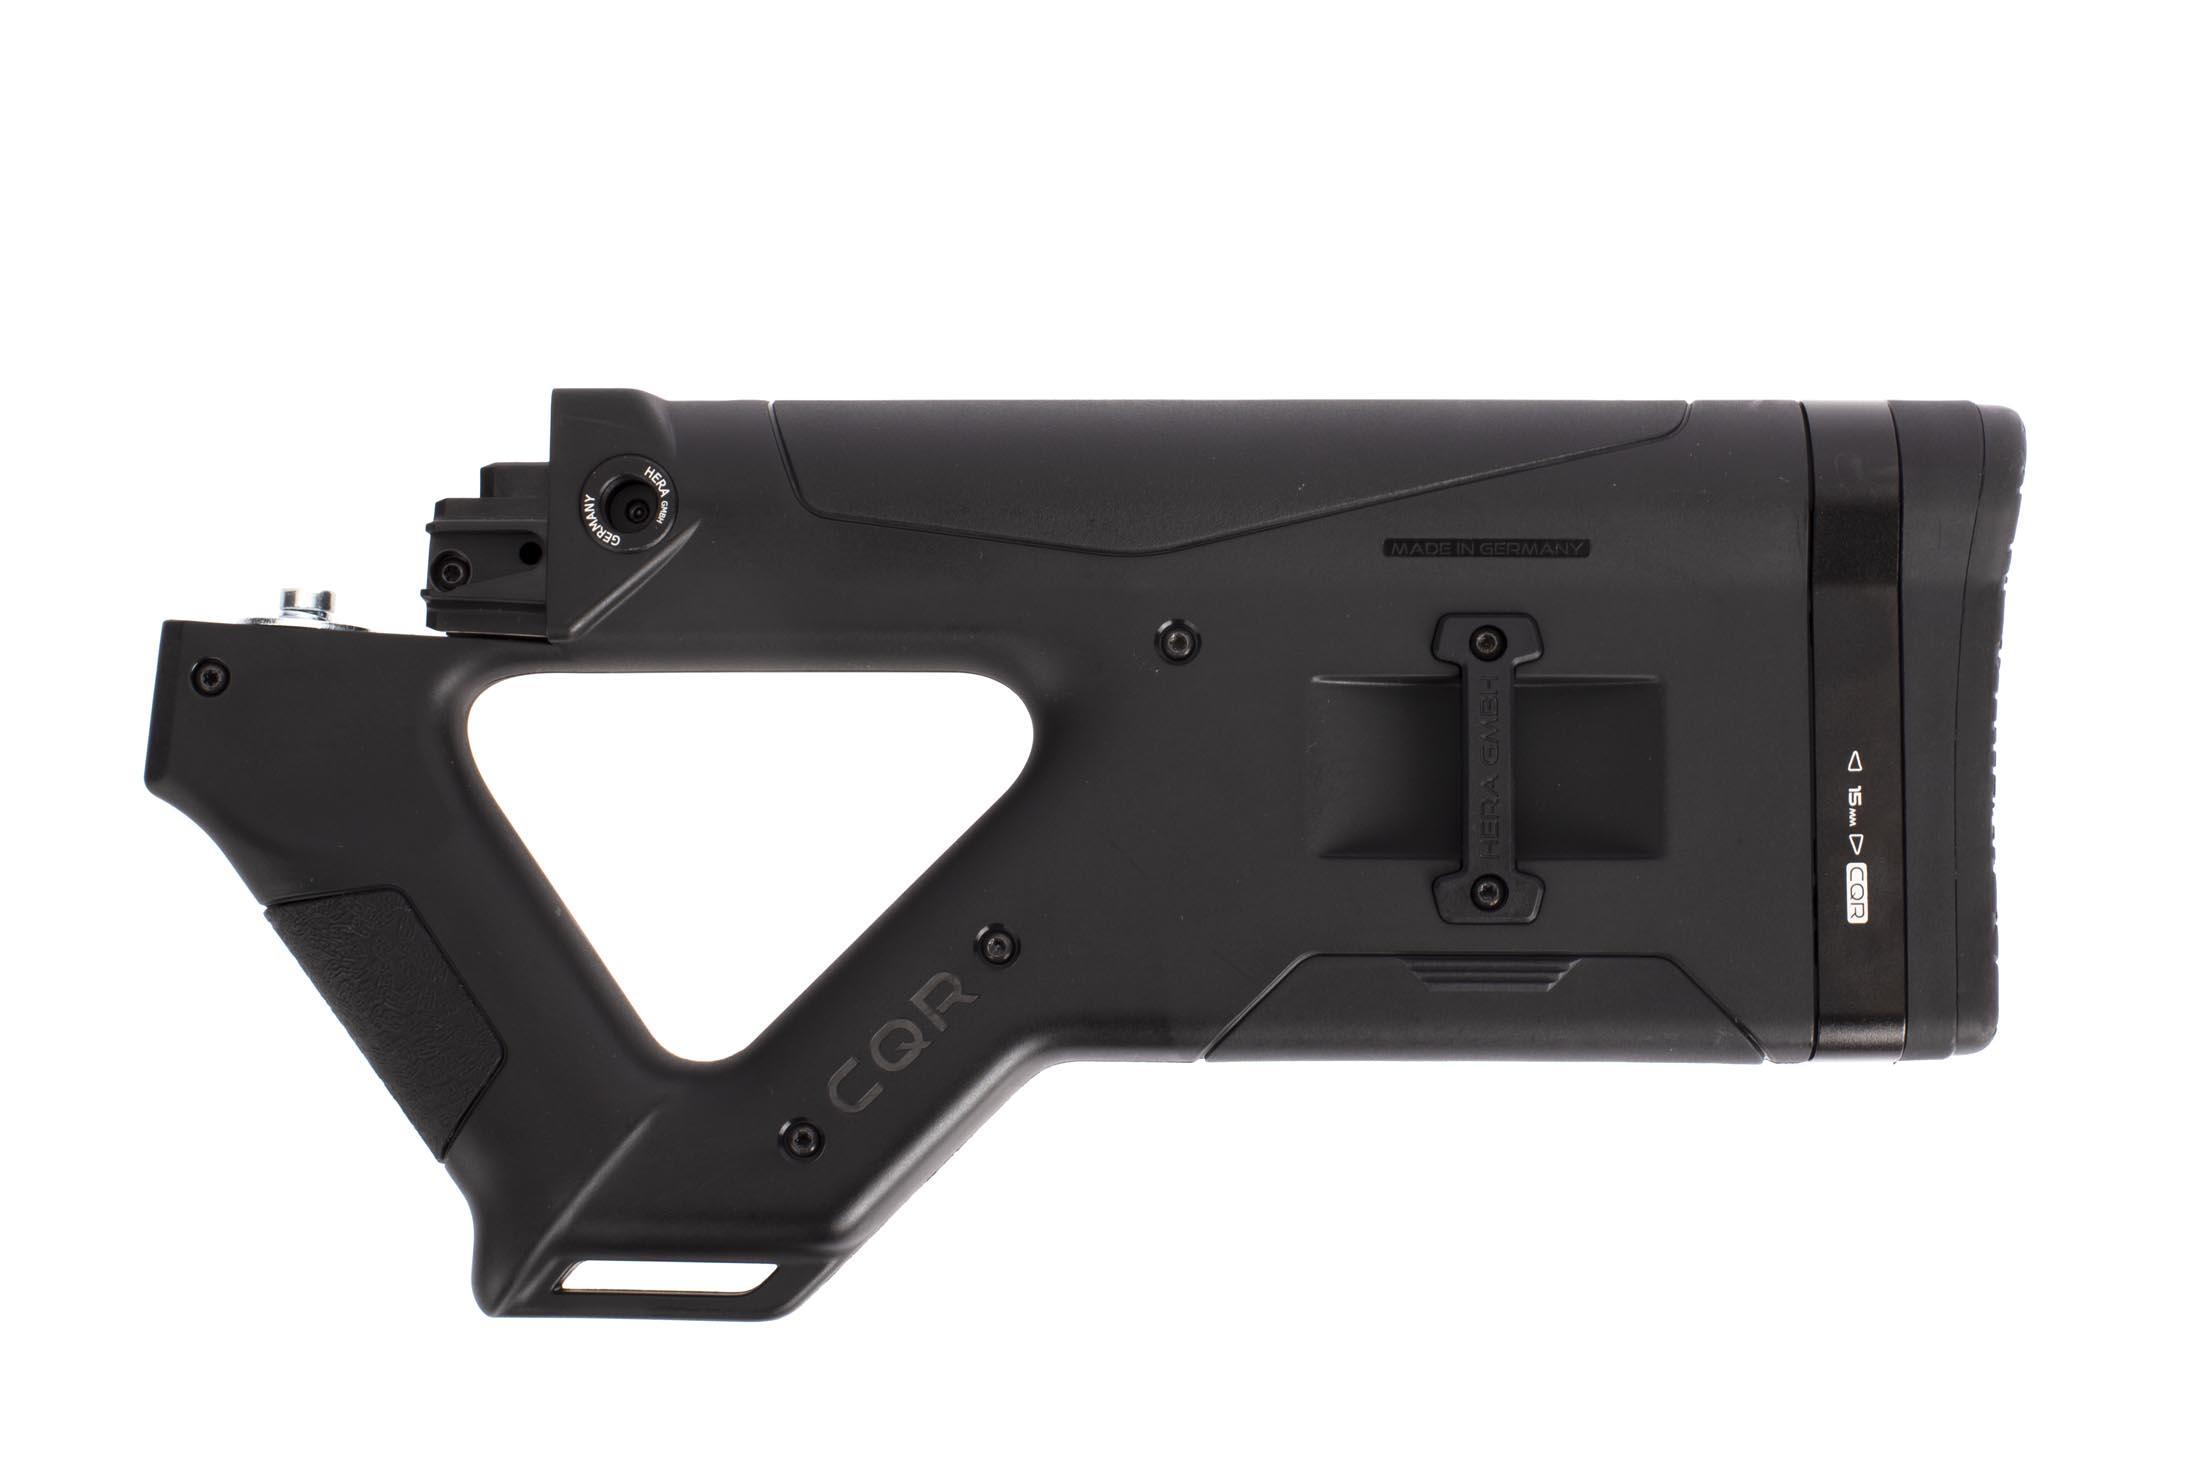 Hera Arms black CQR AK stock is completely ambidextrous with mirrored sling attachment points and symettrical grip